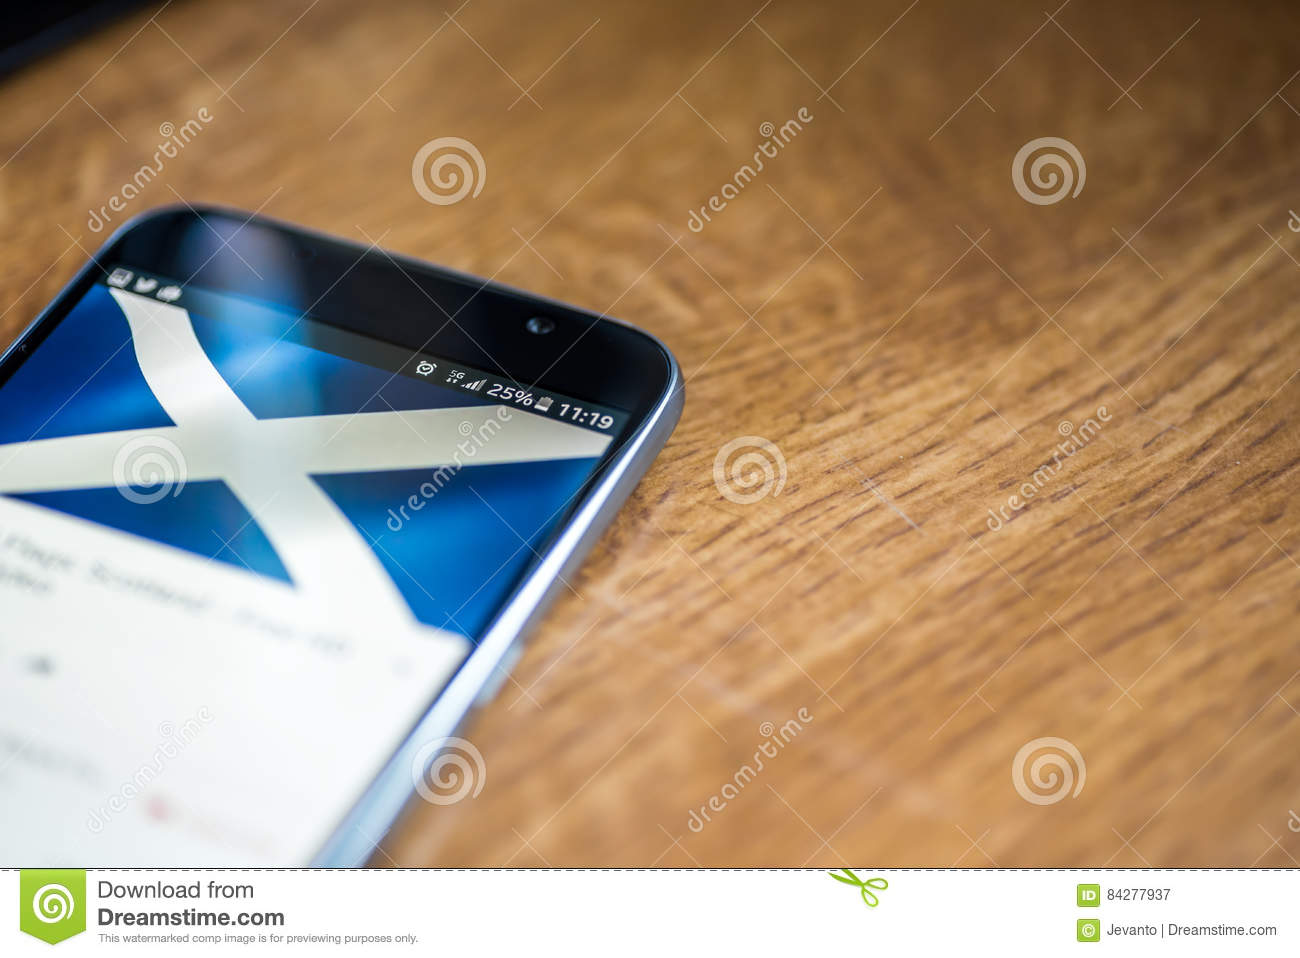 Smartphone on wooden background with 5G network sign 25 per cent charge and Scotland flag on the screen